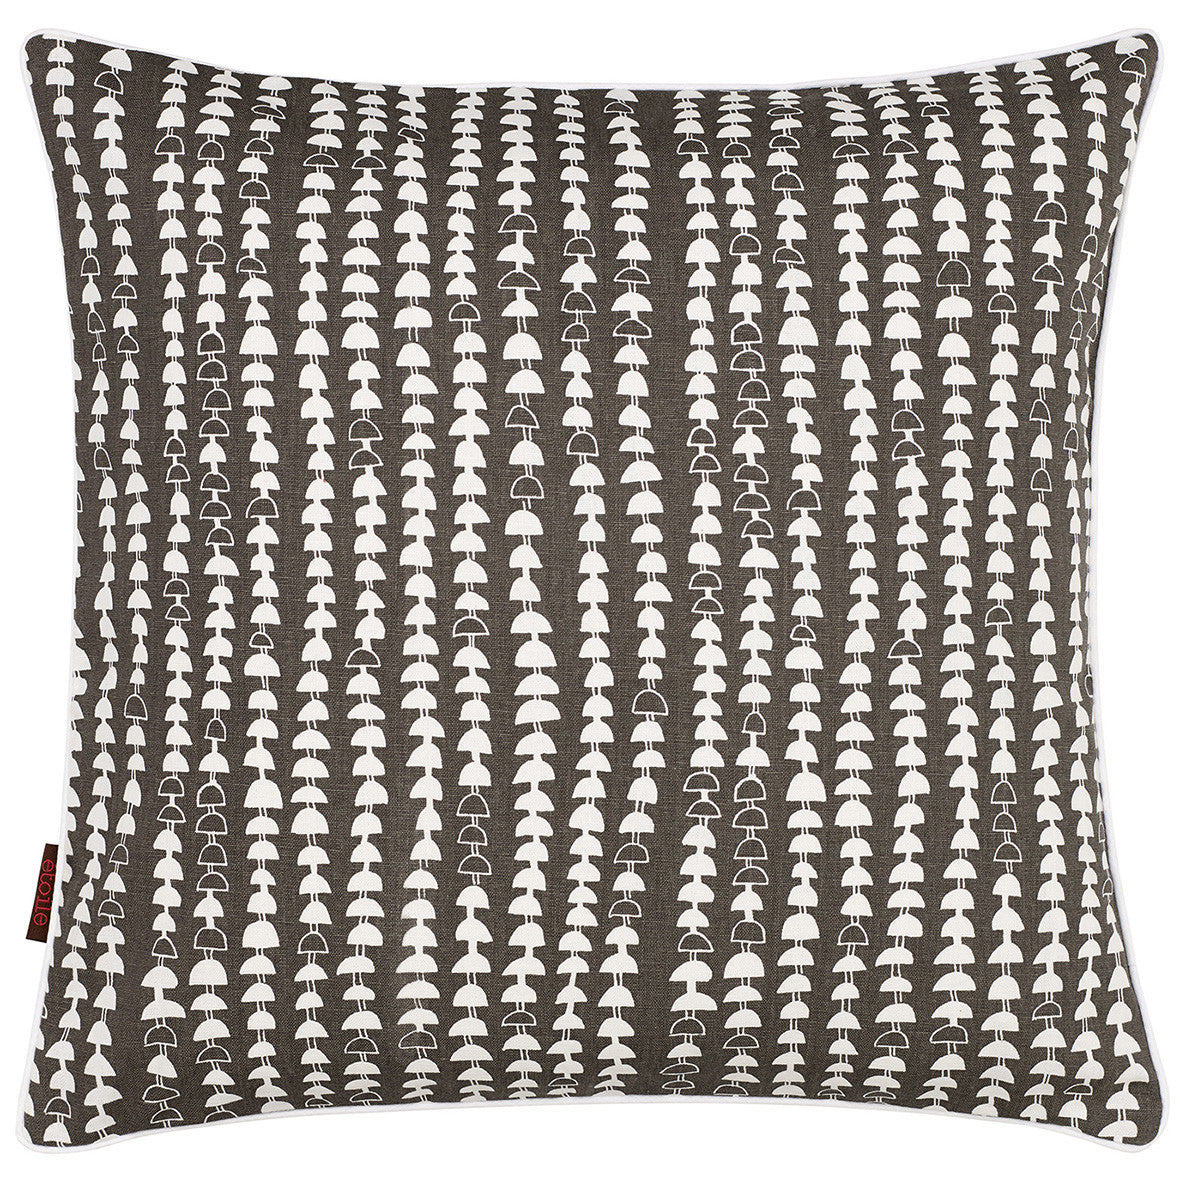 Hopi Graphic Pattern Cotton Linen Cushion in Stone Gray